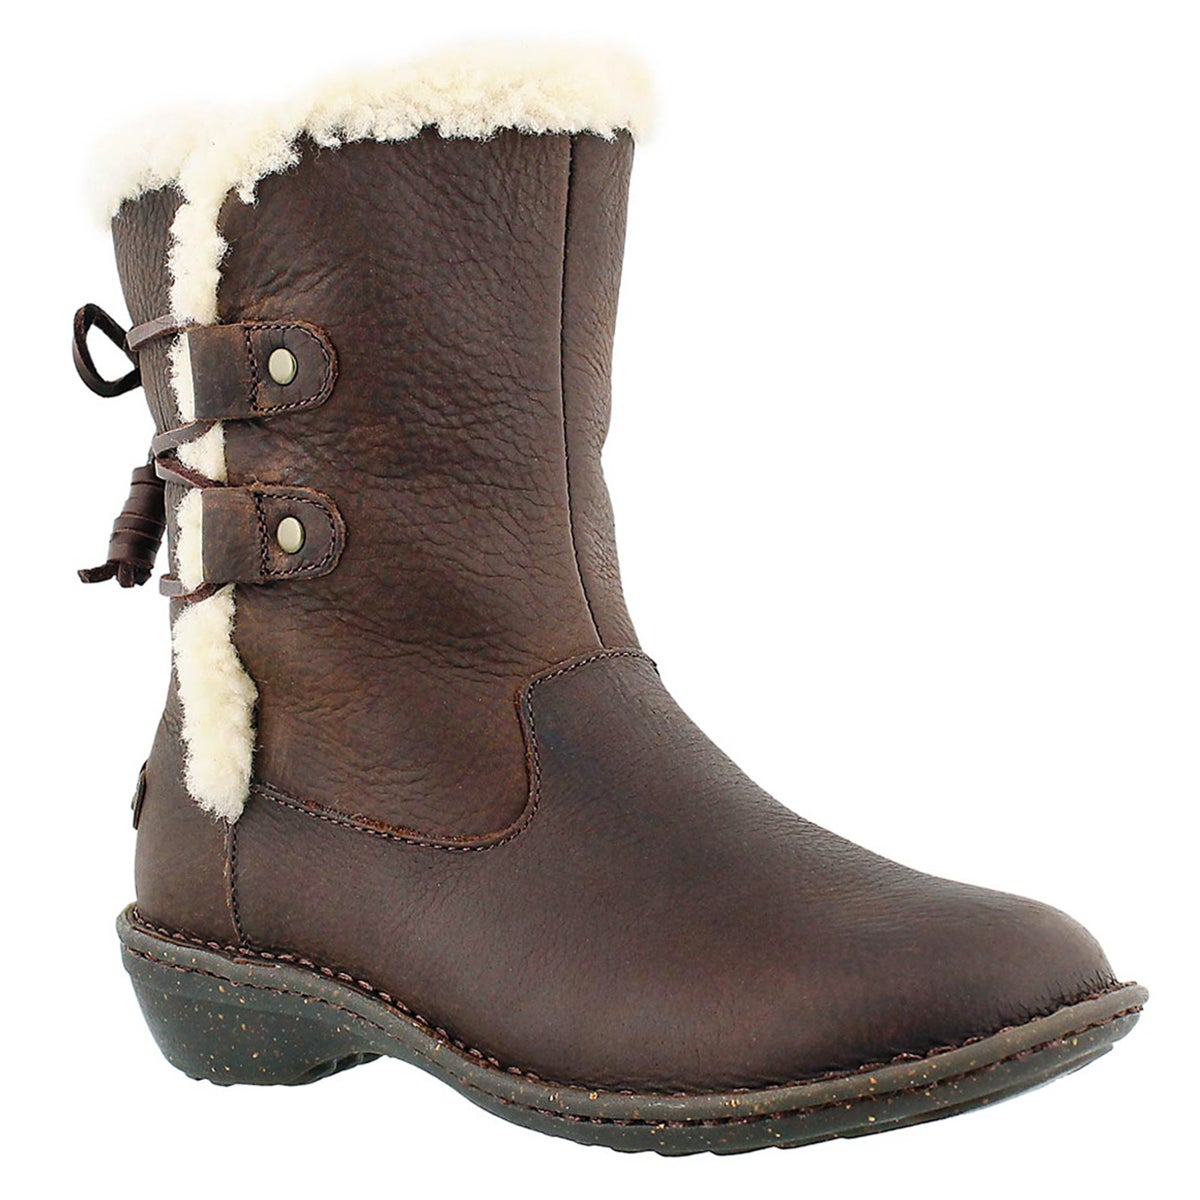 can you wear uggs in 50 degree weather